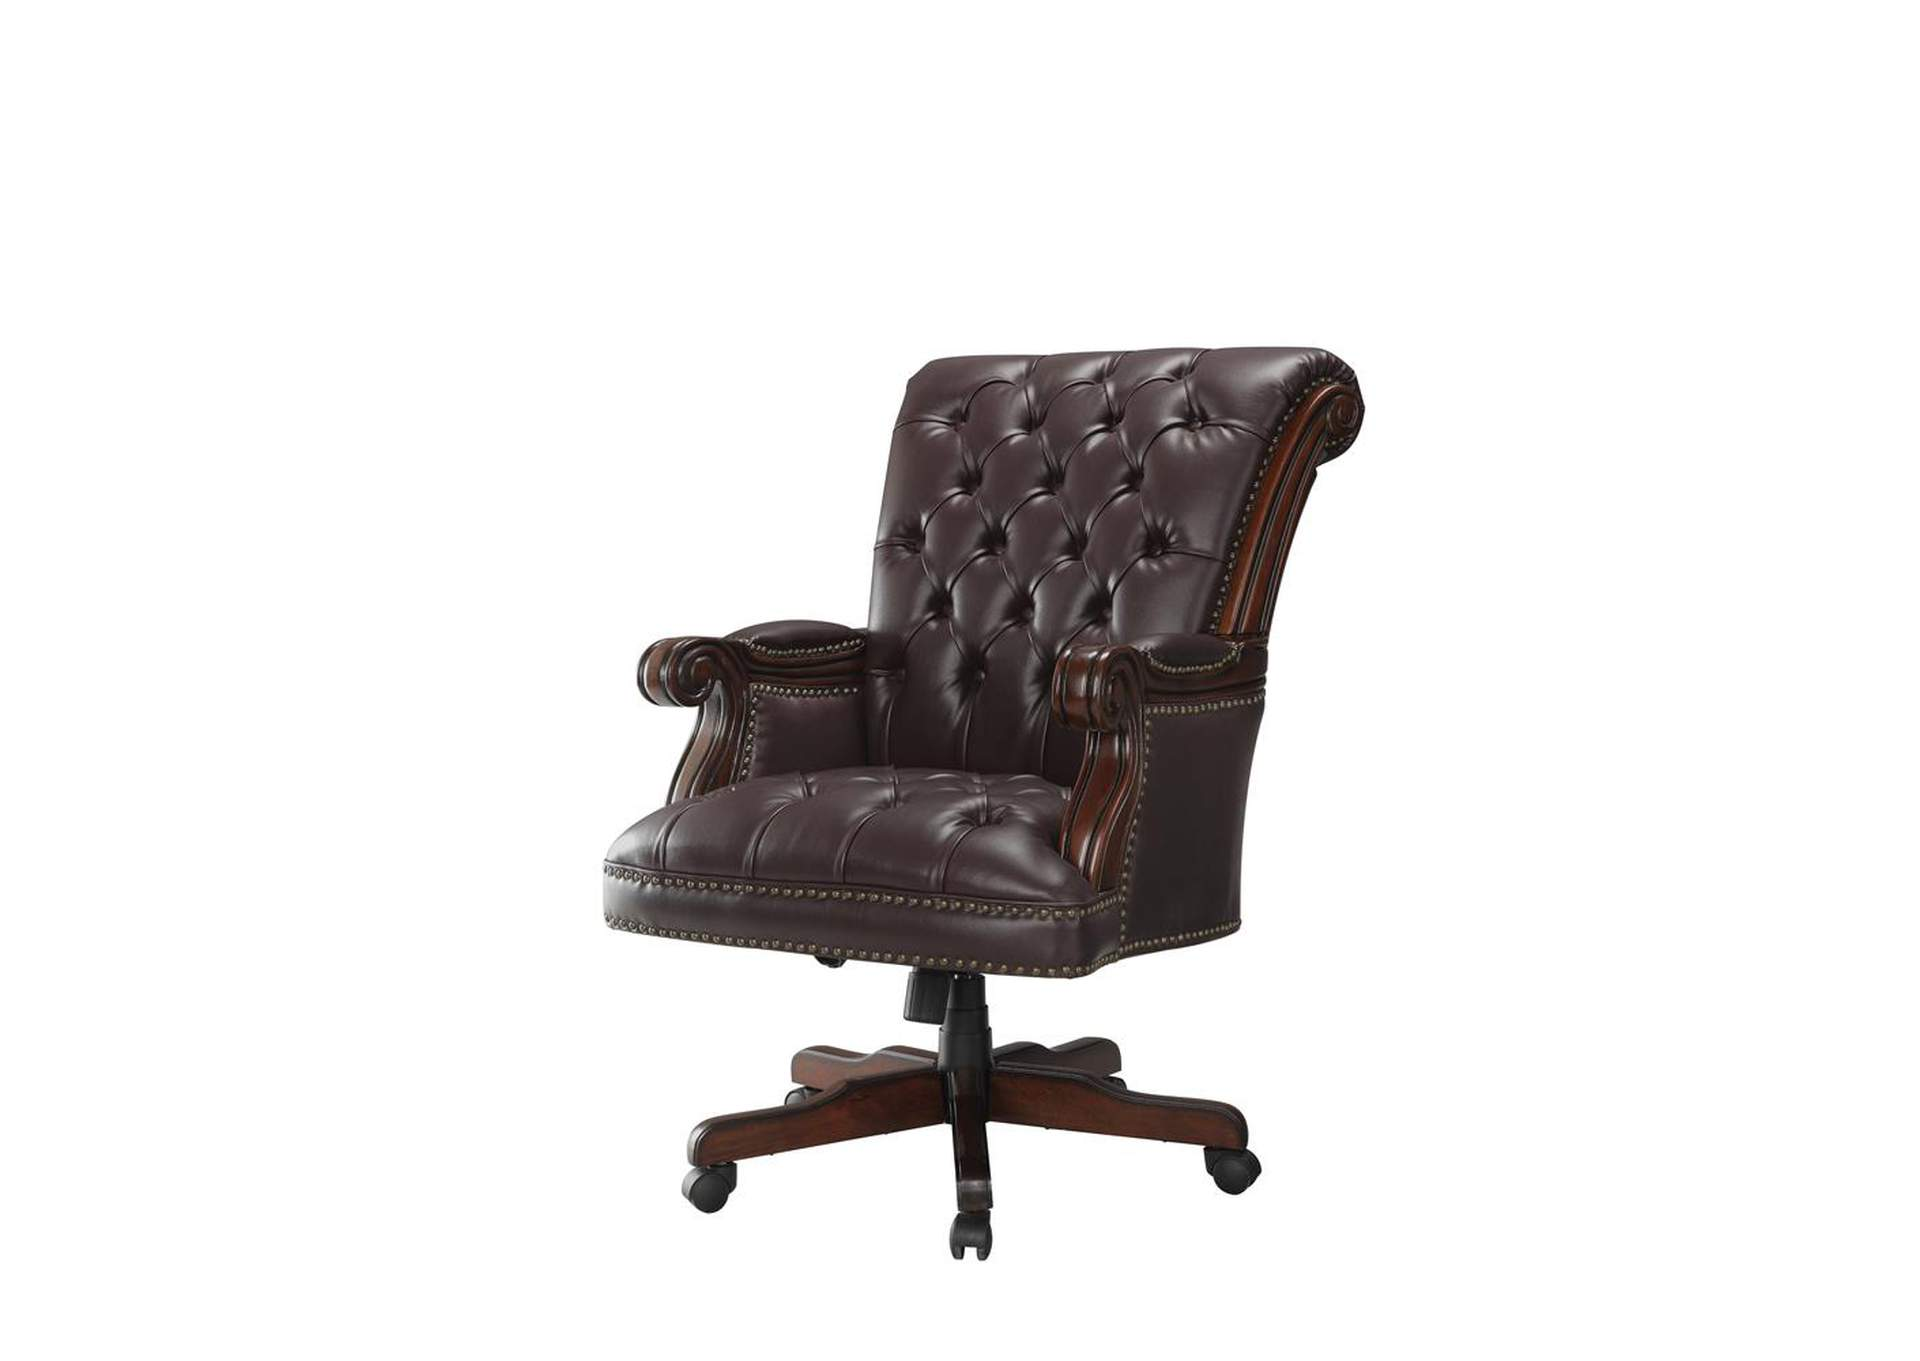 Matterhorn Transitional Dark Brown Office Chair,Coaster Furniture